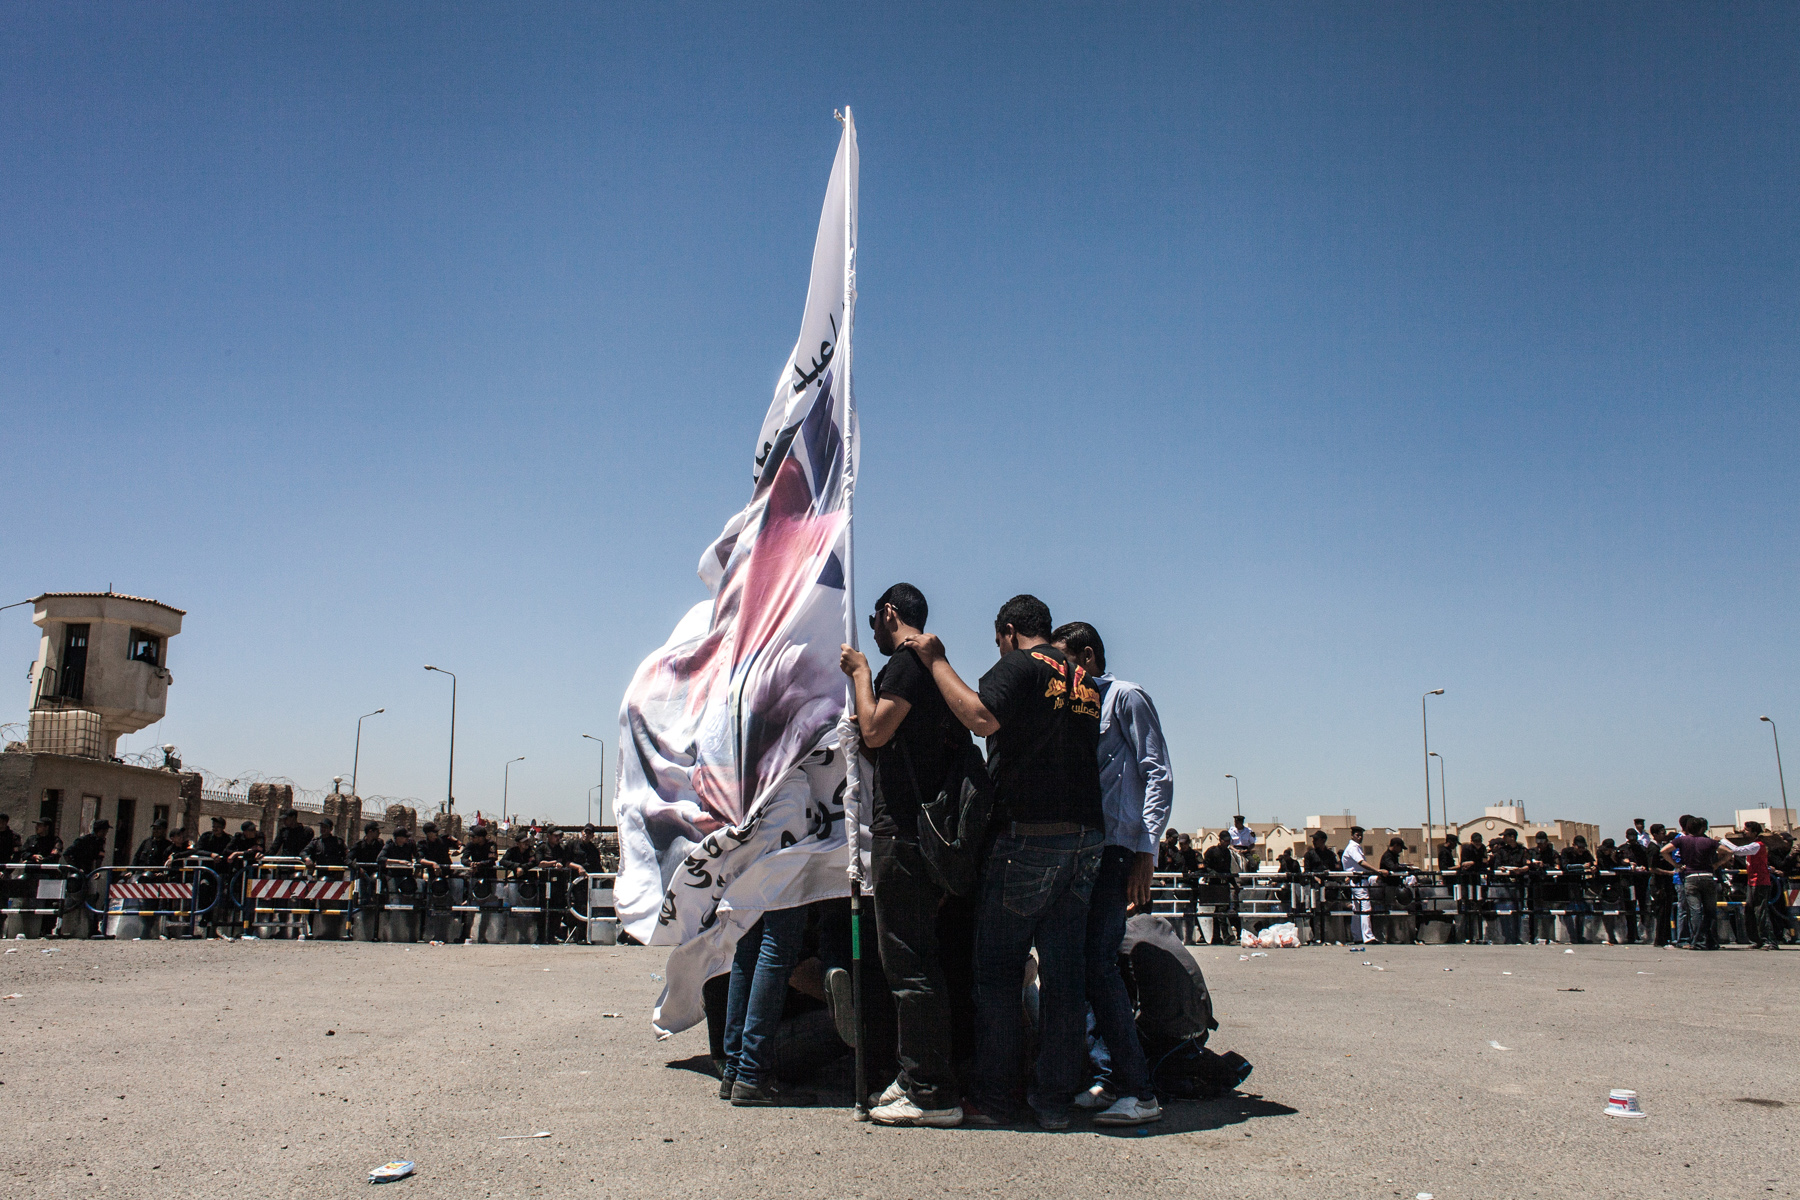 Ultras in front of the Police Academy in New Cairo where the Port Said trial is held. One member of the Ultras is seen holding a giant flag displaying faces of victims of the Port Said massacre